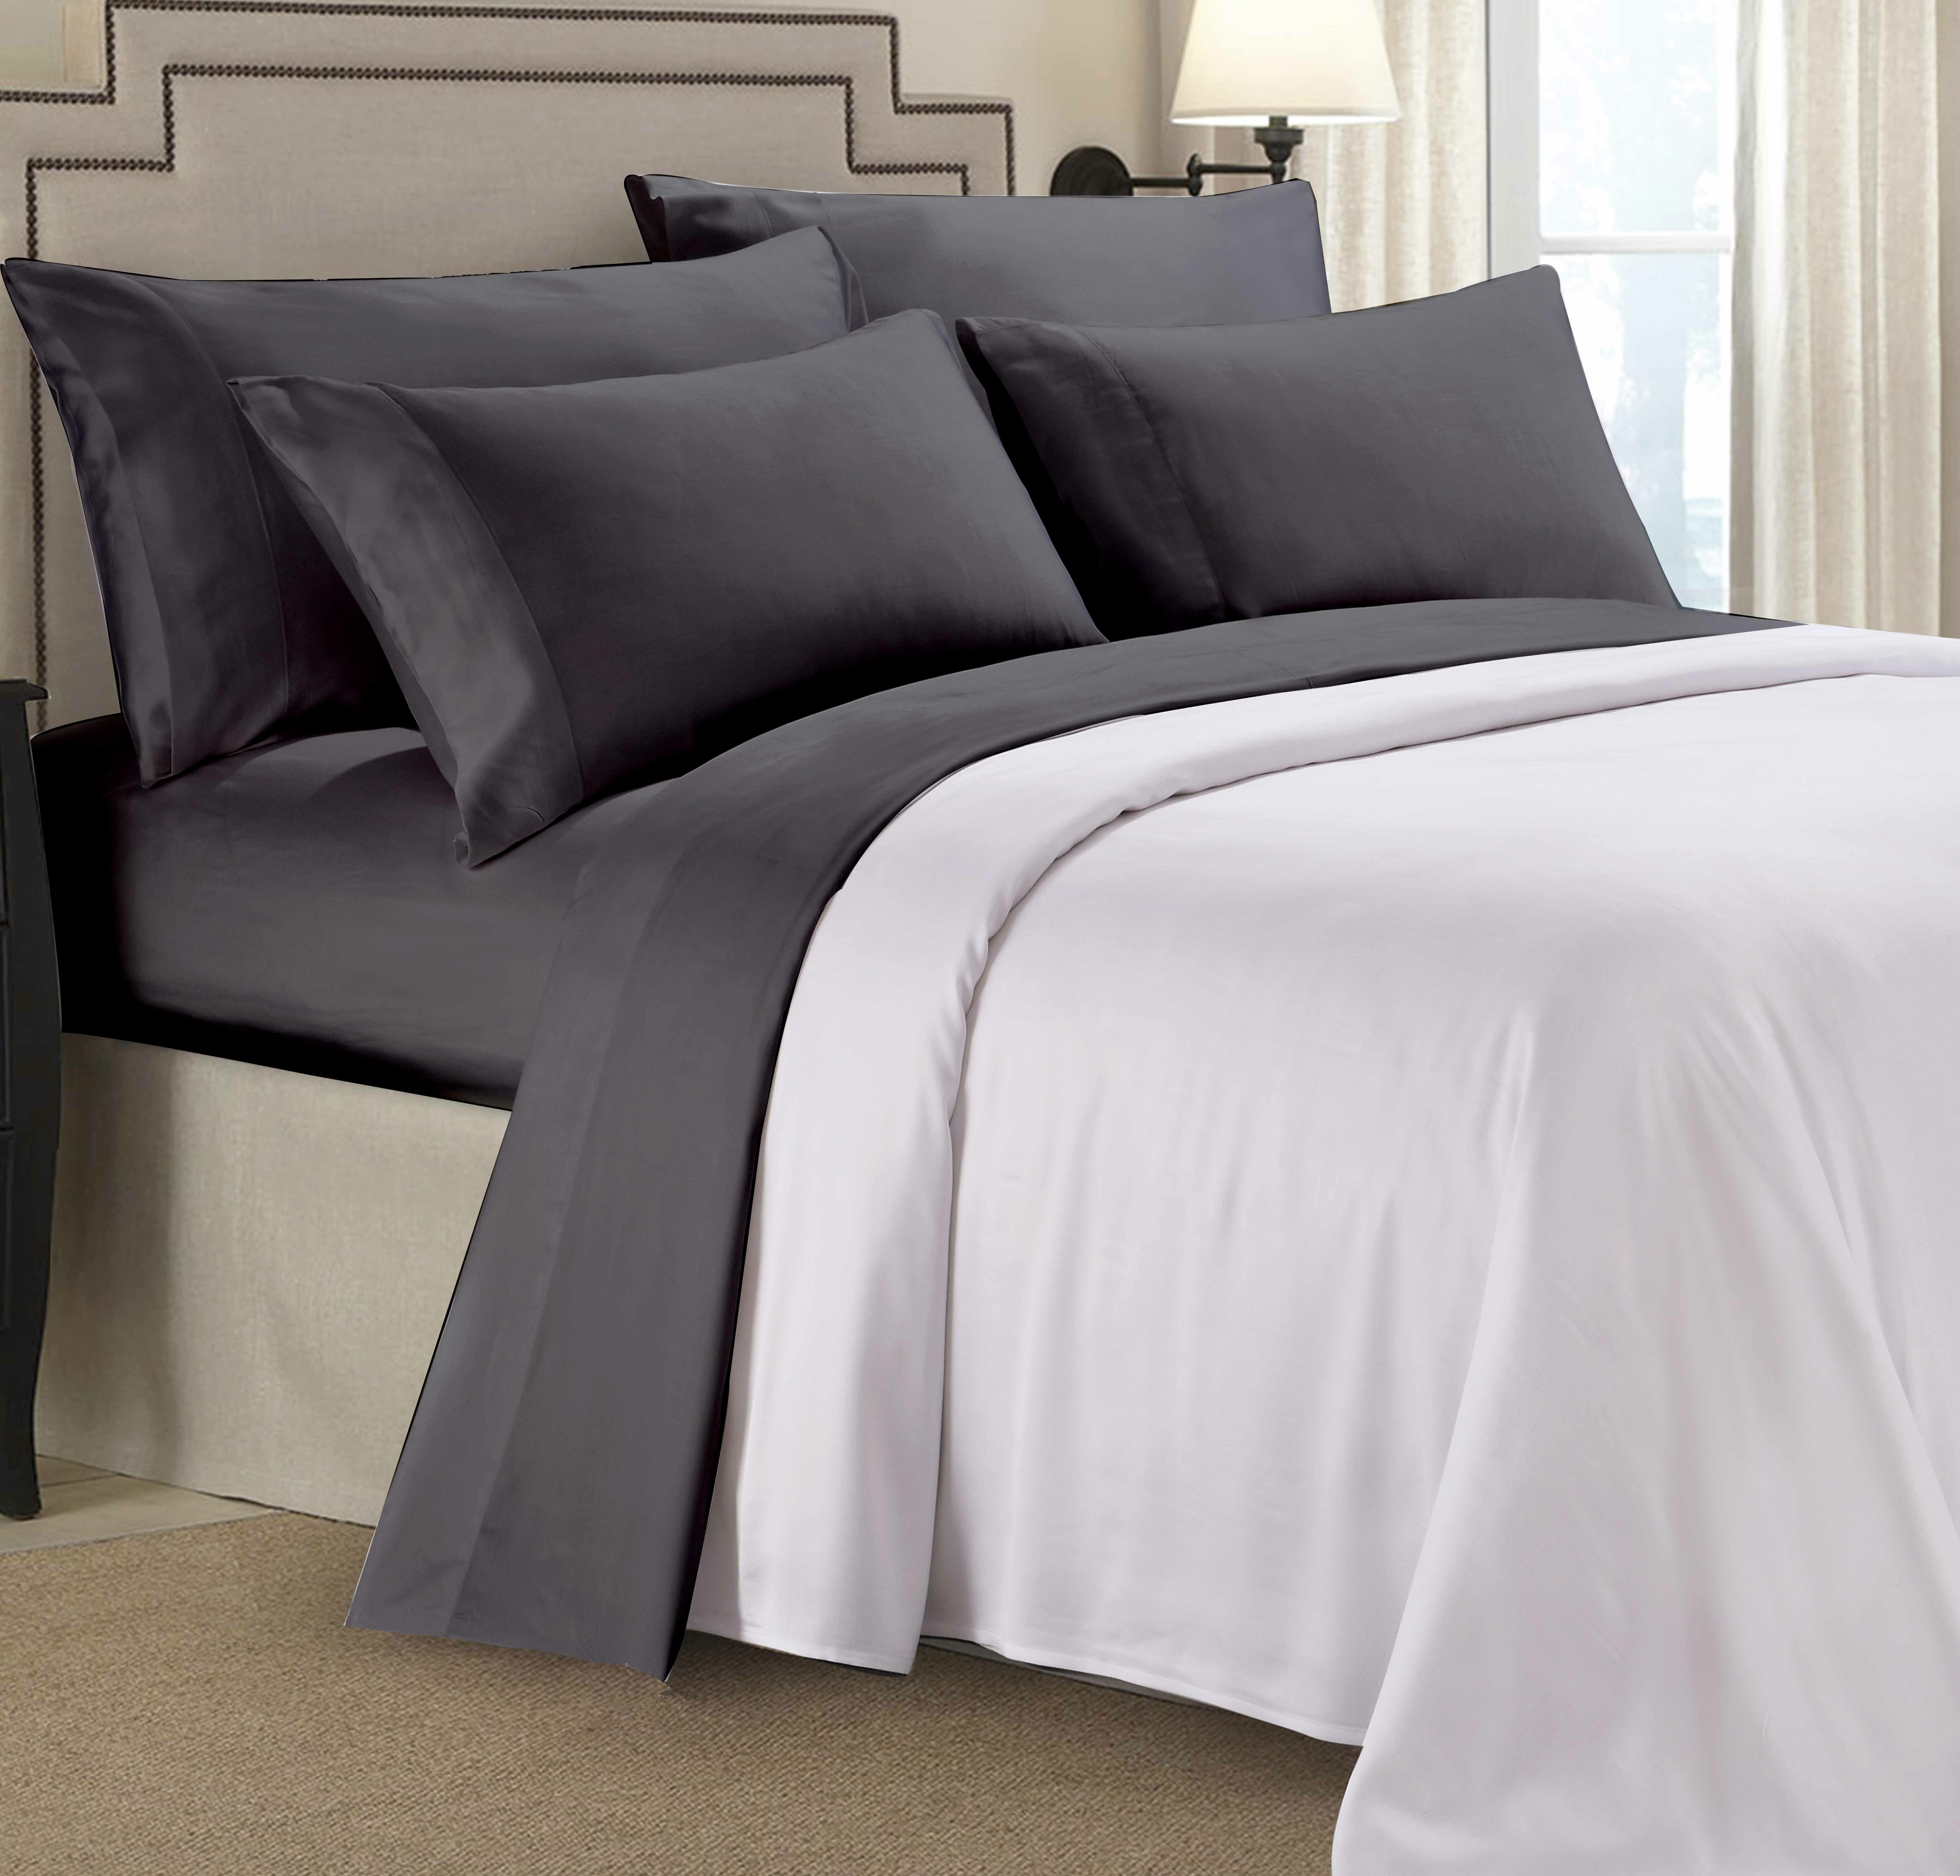 final black designed in mind with crop product cropped bedding sheets pl set bed panda bamboo comfort